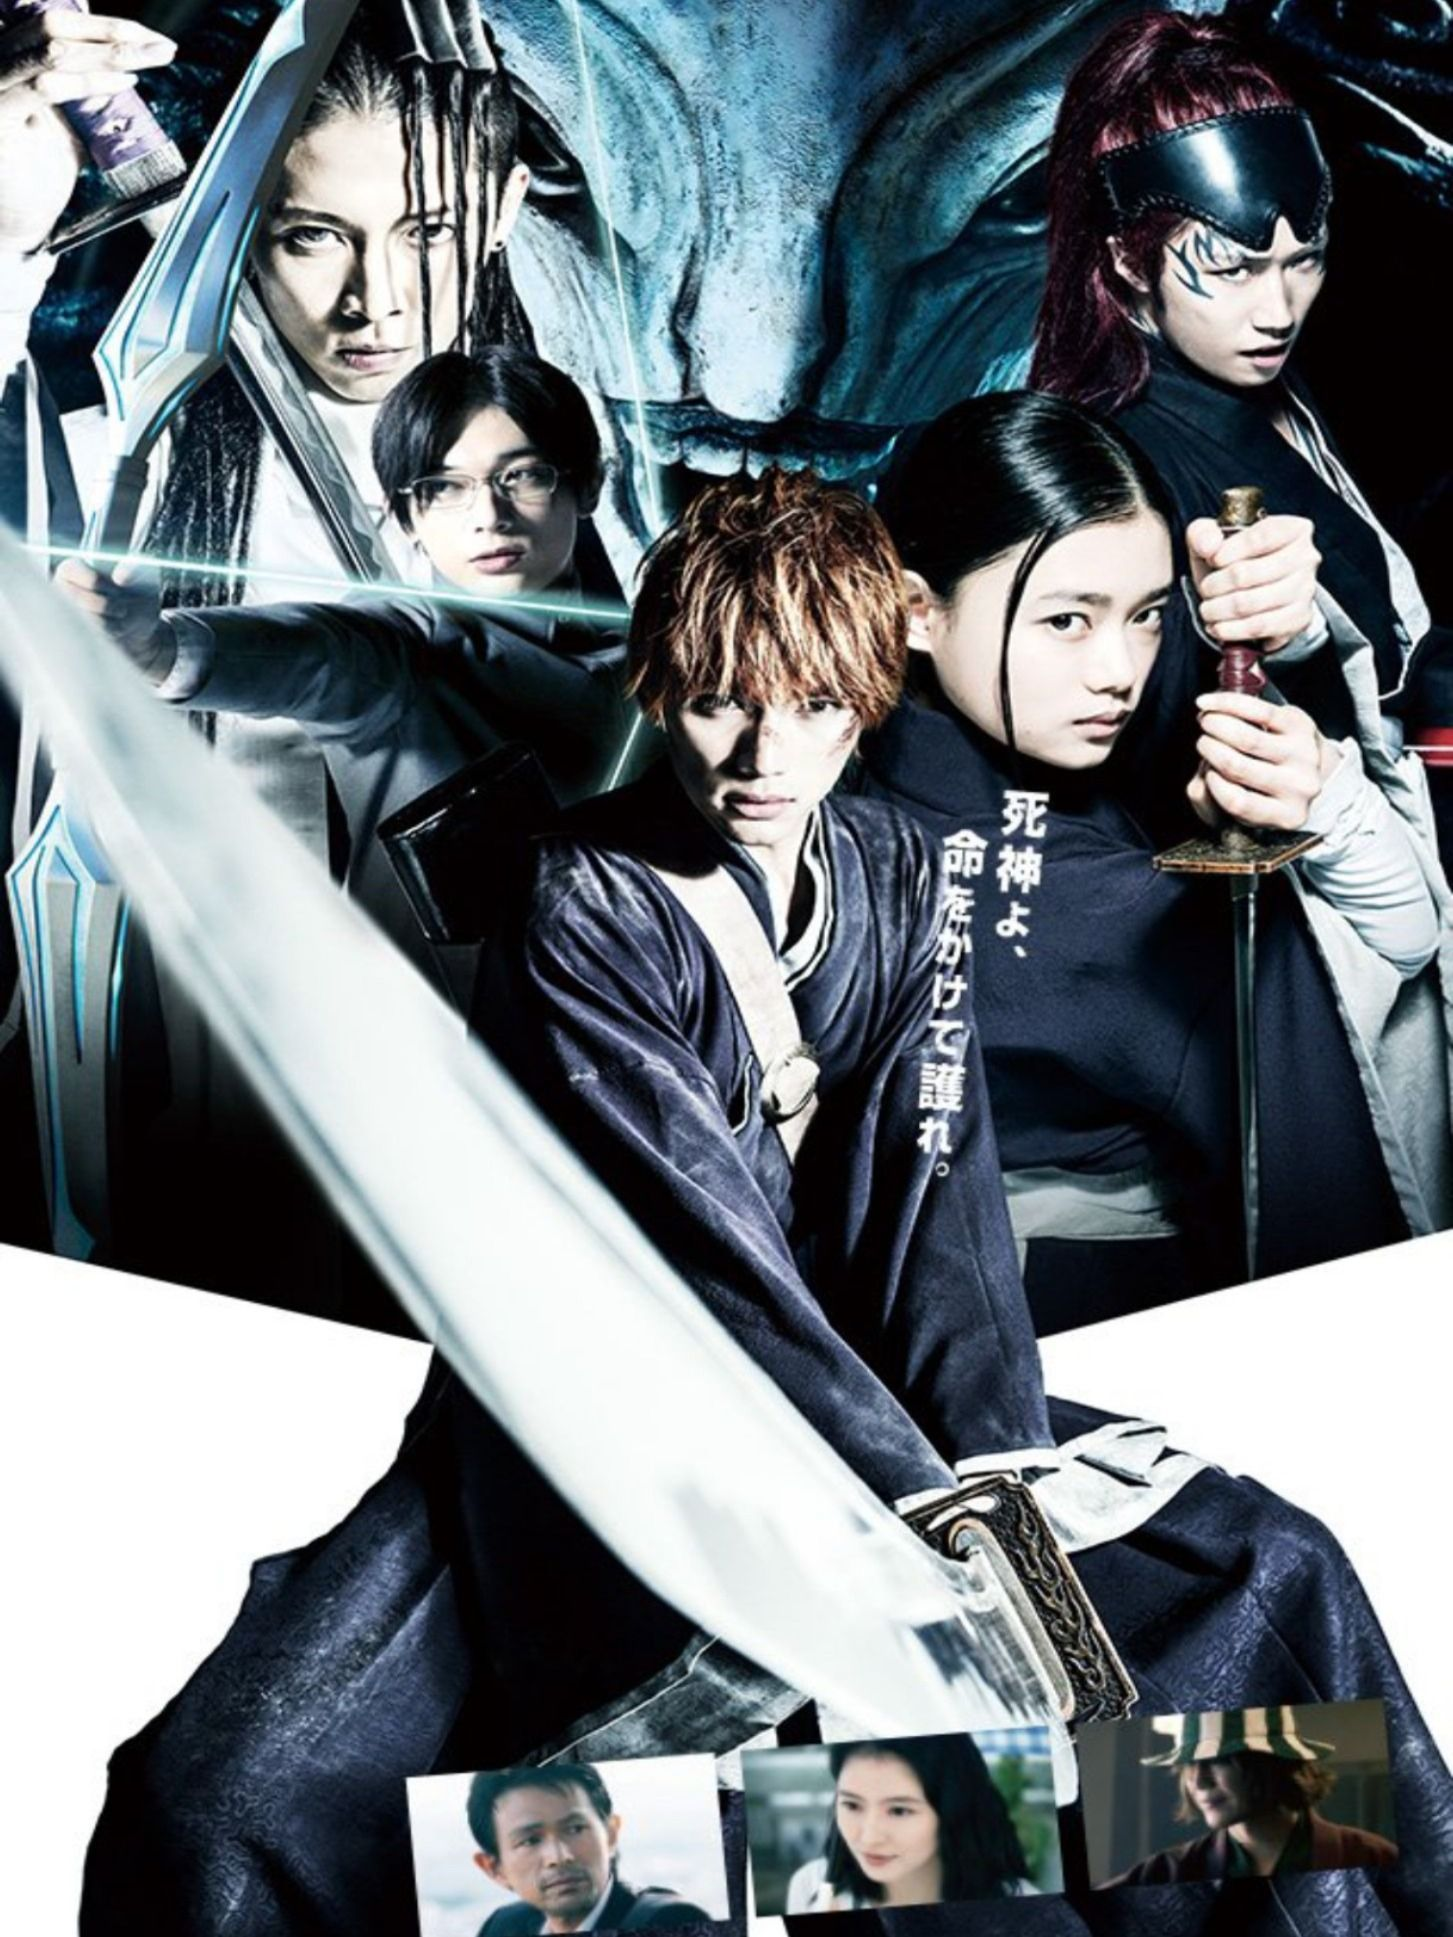 Bleach Live Action Movie In 2021 Bleach Movie Live Action Action Anime Movies